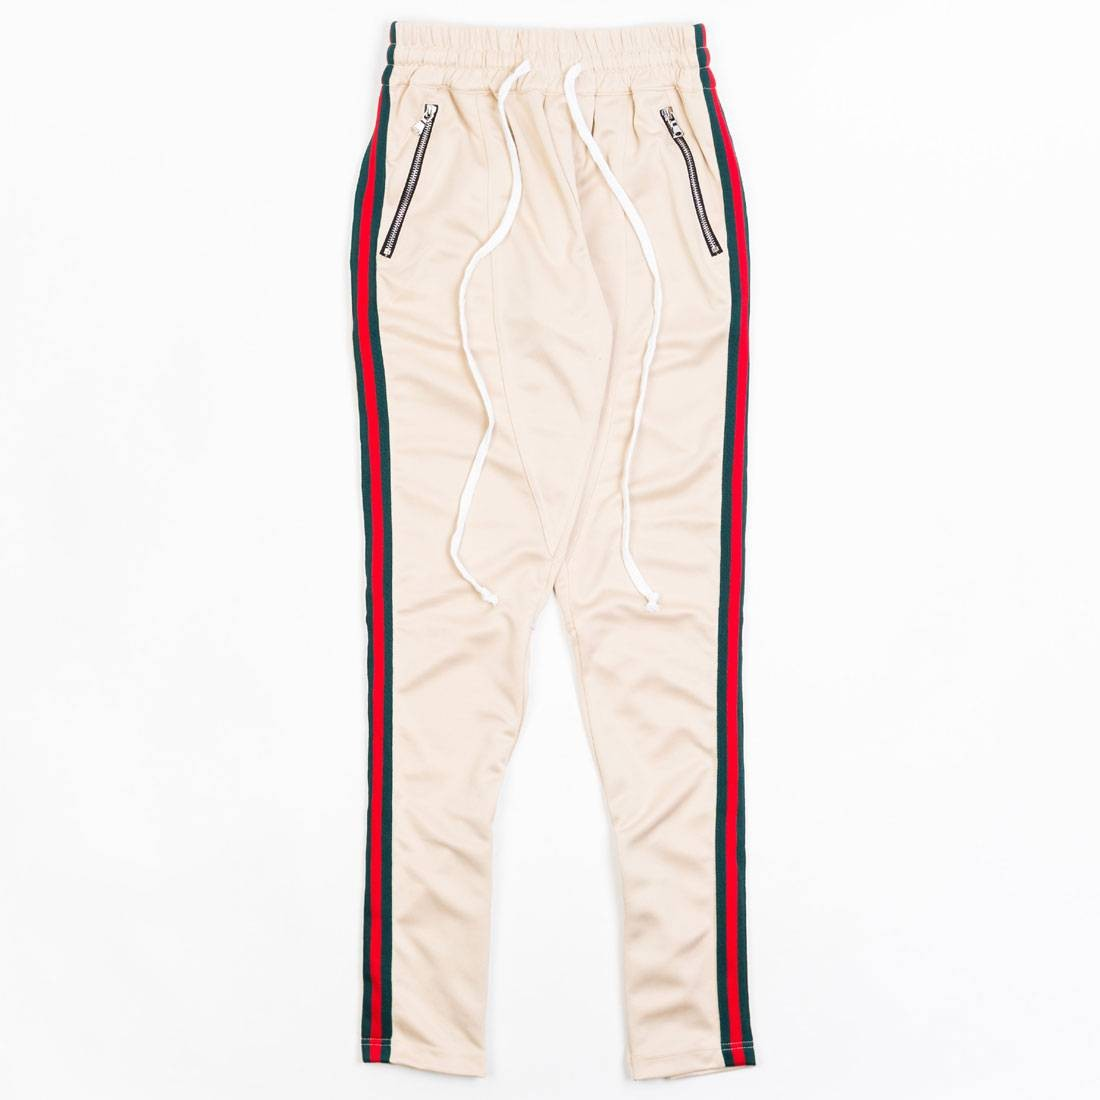 Lifted Anchors Men Jenner Track Pants - BAIT Exclusive (khaki / multi)